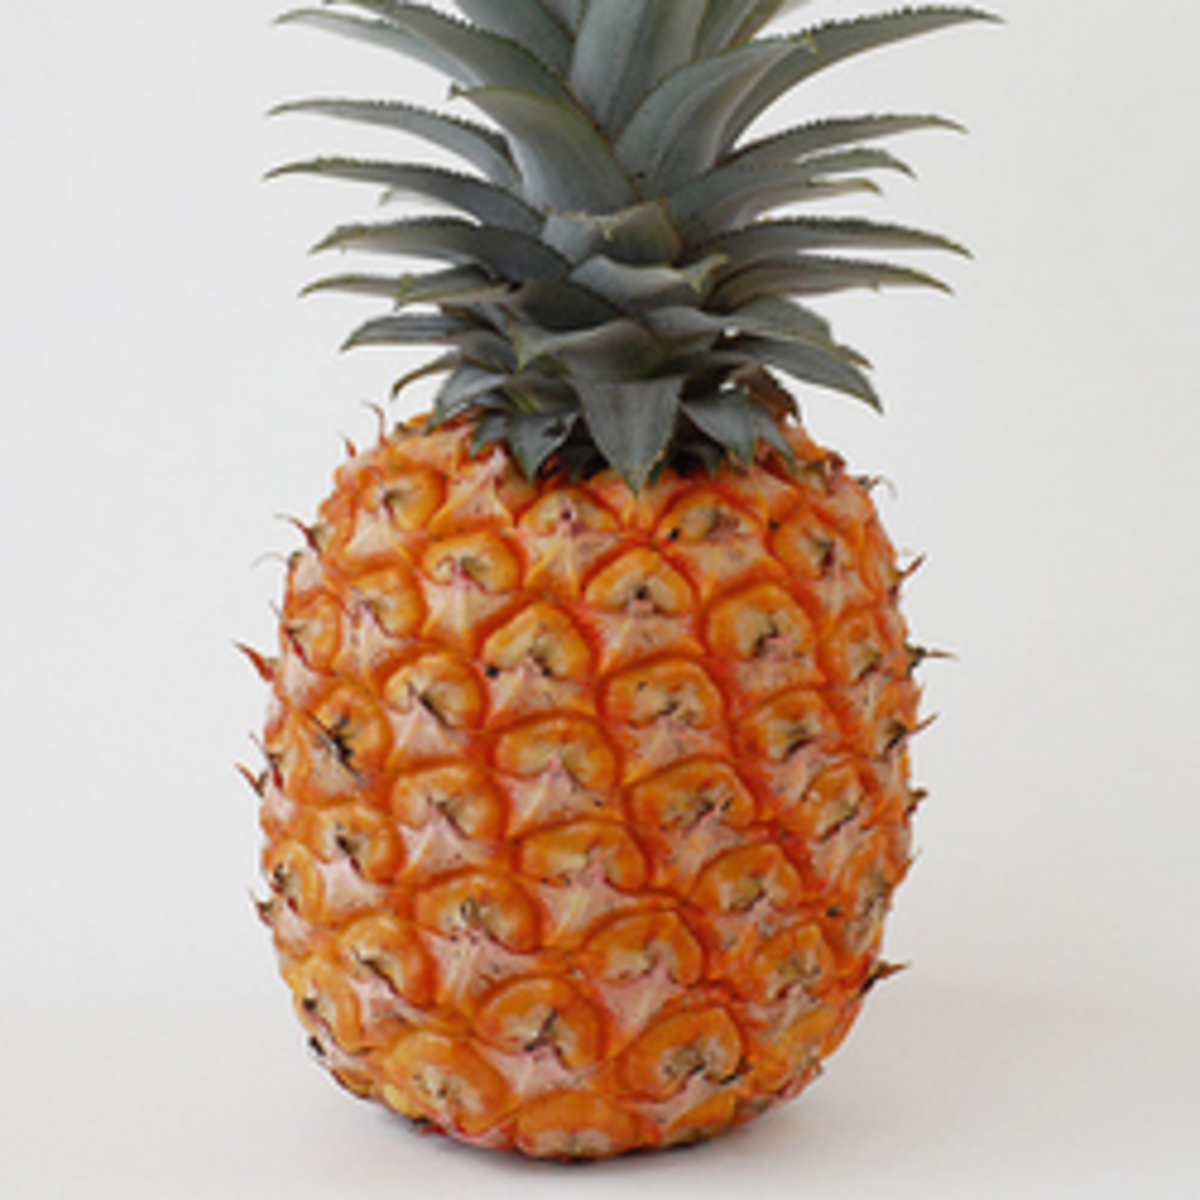 10 Cool Uses for Pineapple Skins